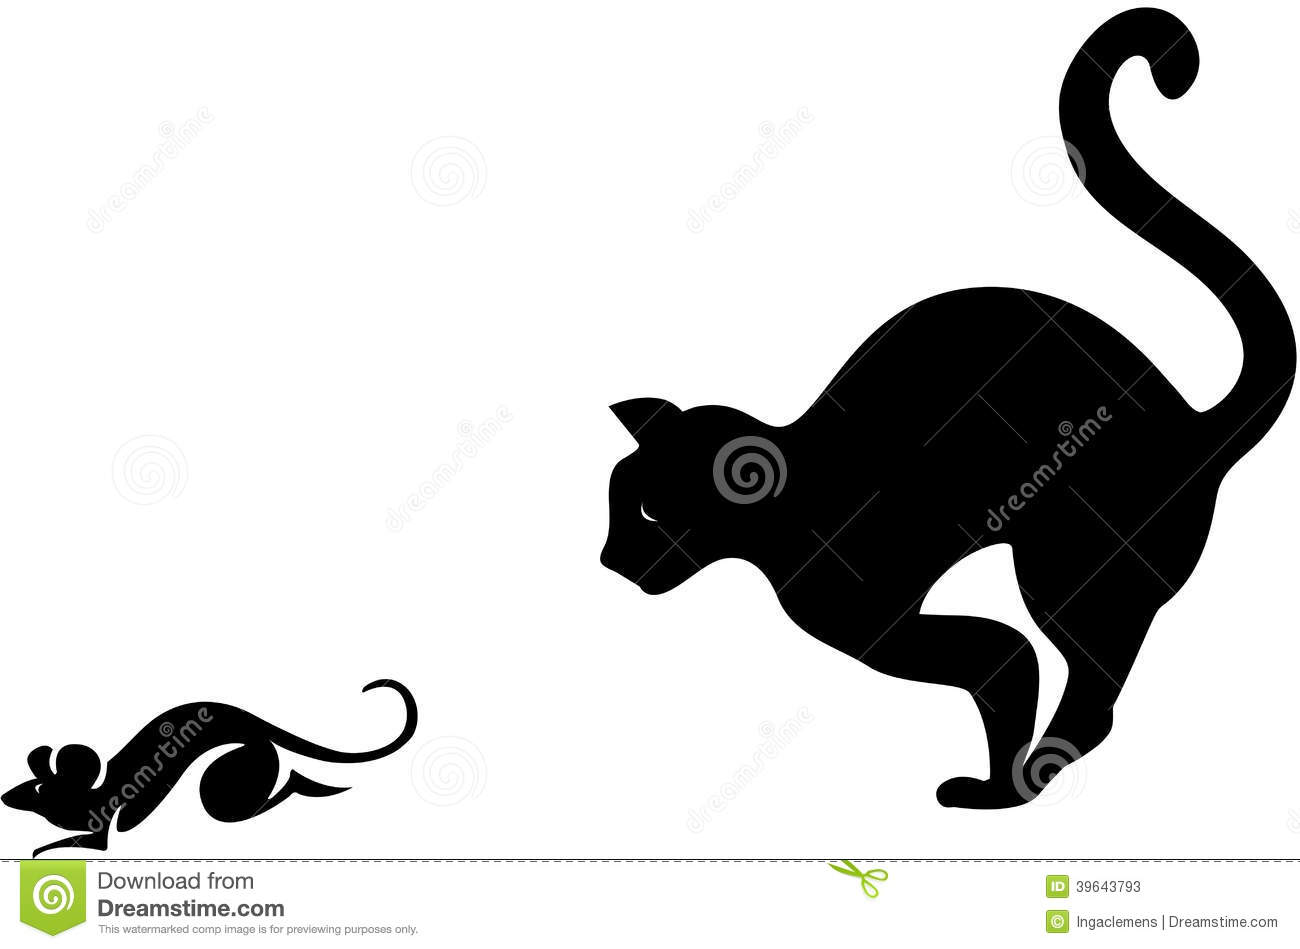 symbols in cat and mouse essay English and vietnamese idioms concerning cats cultural studies essay symbols, cats are an animal that of english and vietnamese idioms concerning cats.